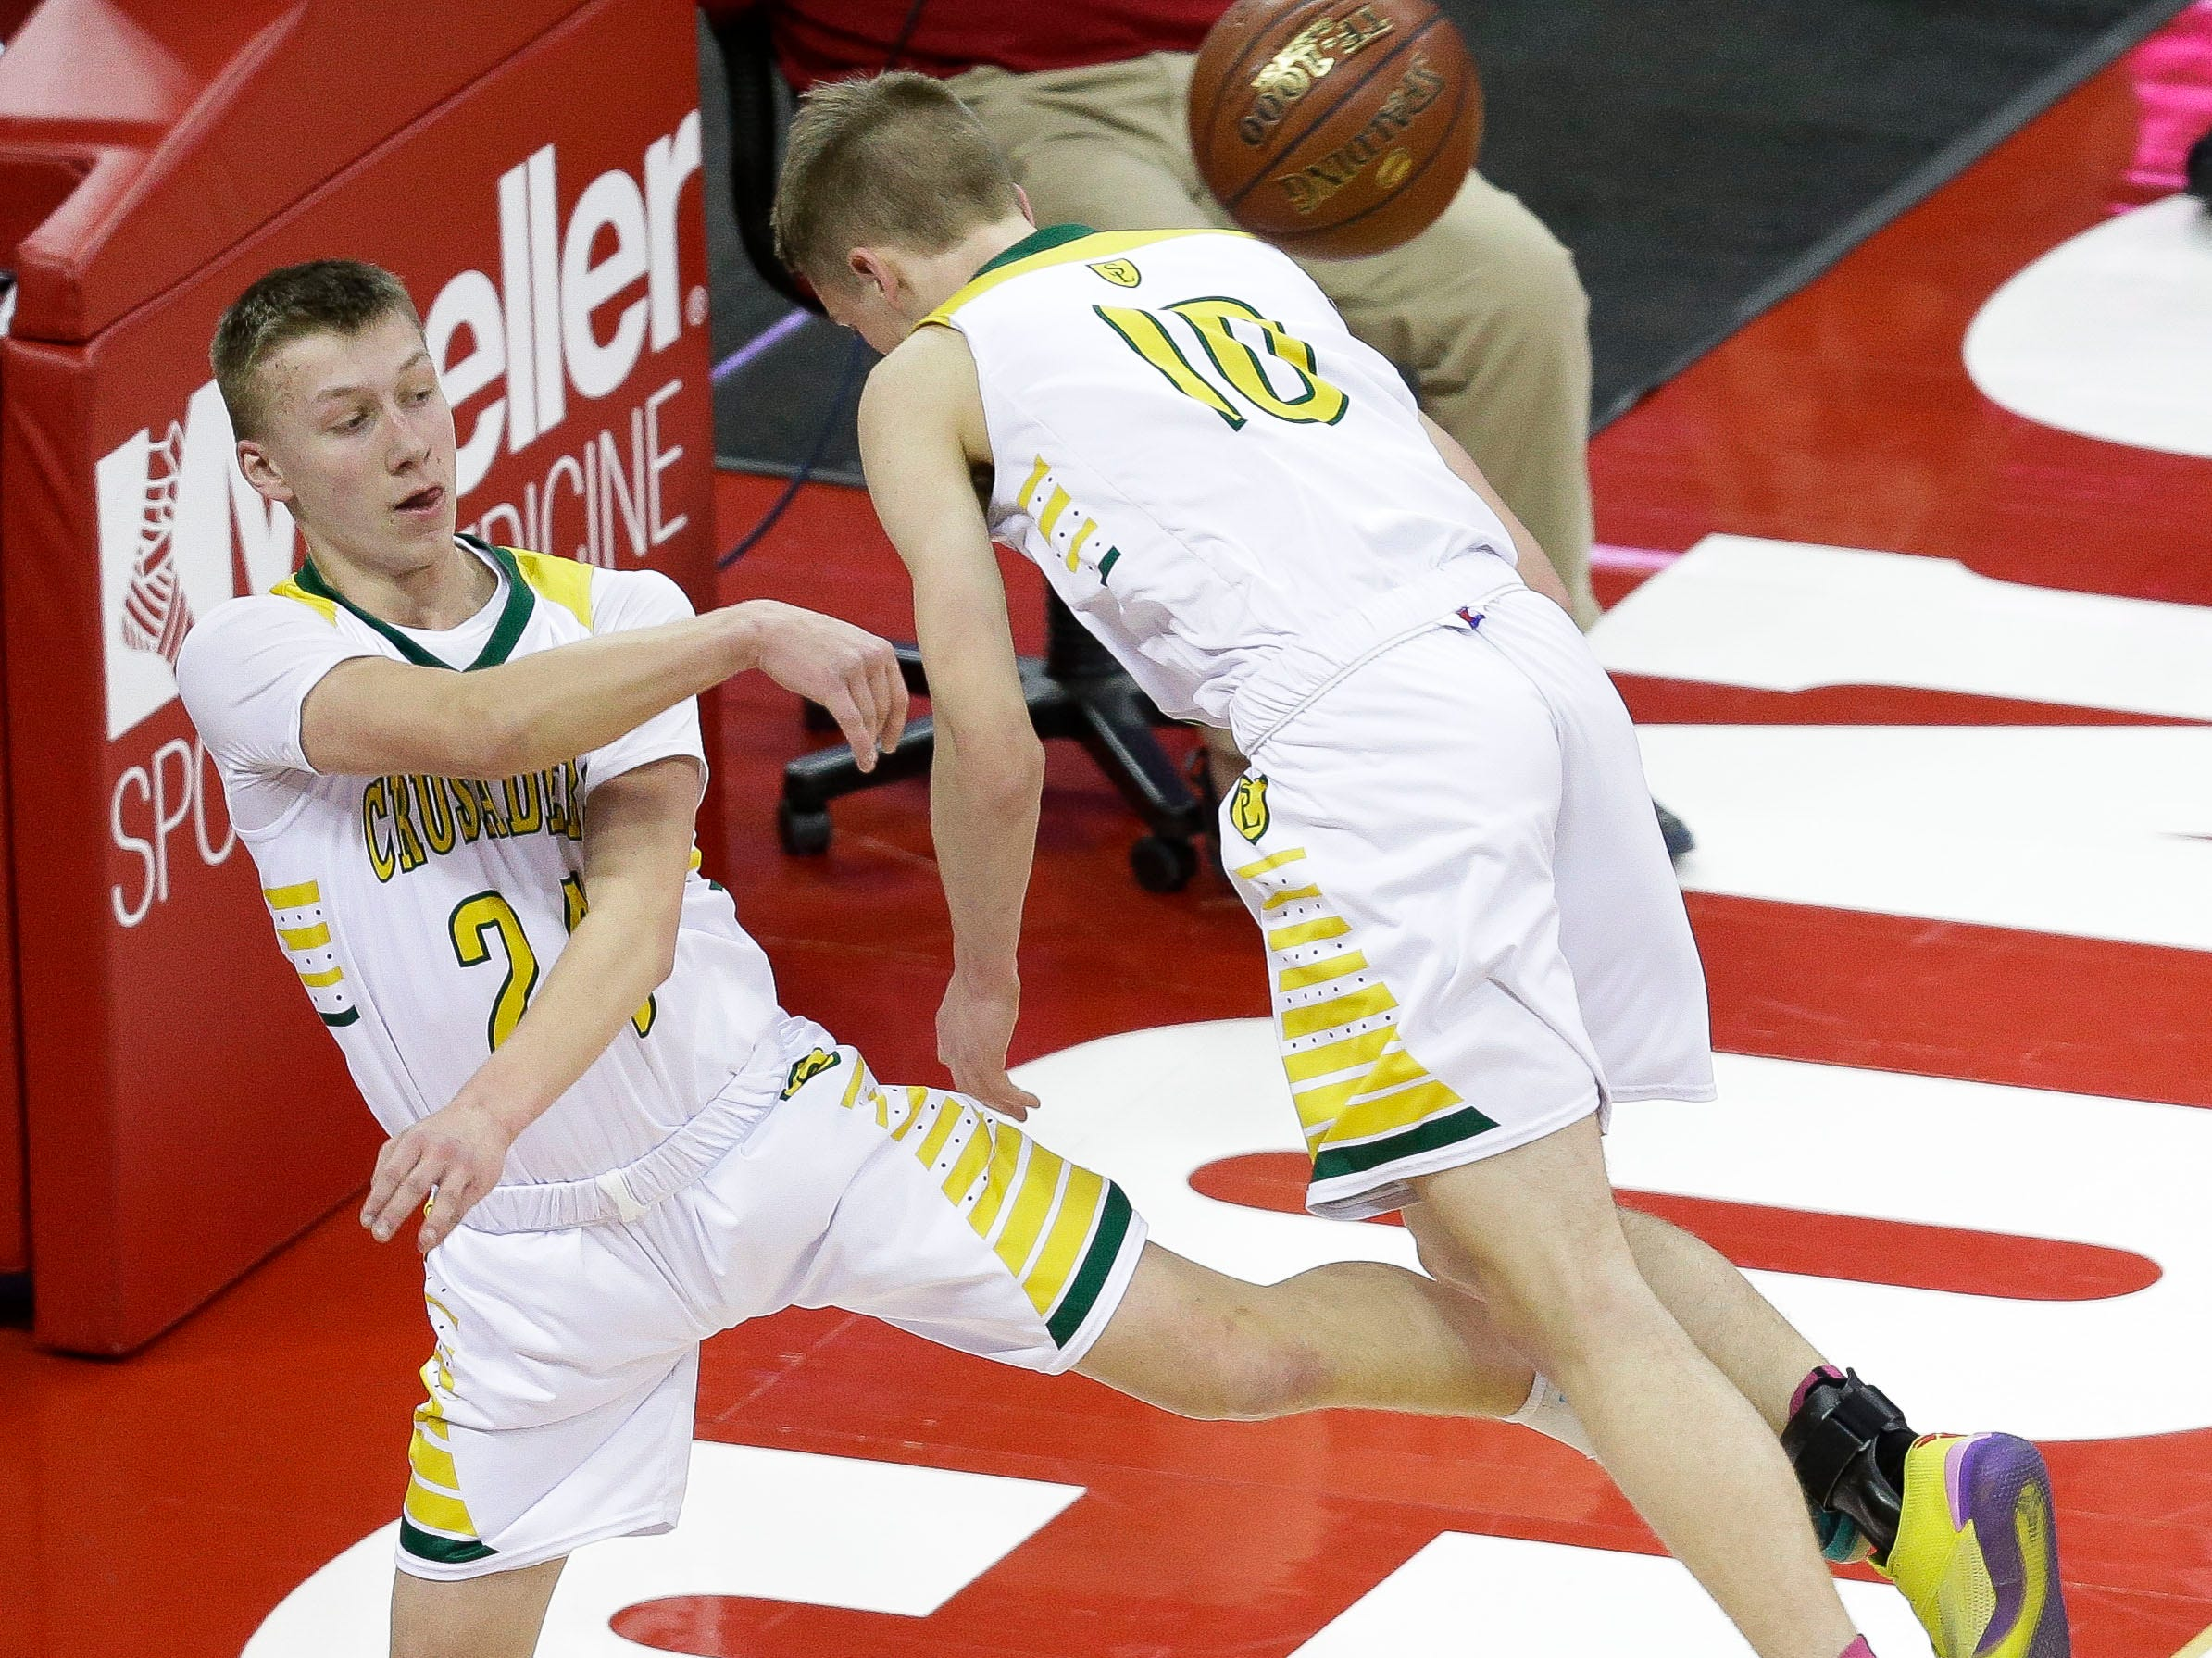 Sheboygan Lutheran High School's Casey Verhagen (24) tries to save a ball under the basket against McDonell Central Catholic High School in a Division 5 boys basketball state semifinal on Friday, March 15, 2019, at the Kohl Center in Madison, Wis.